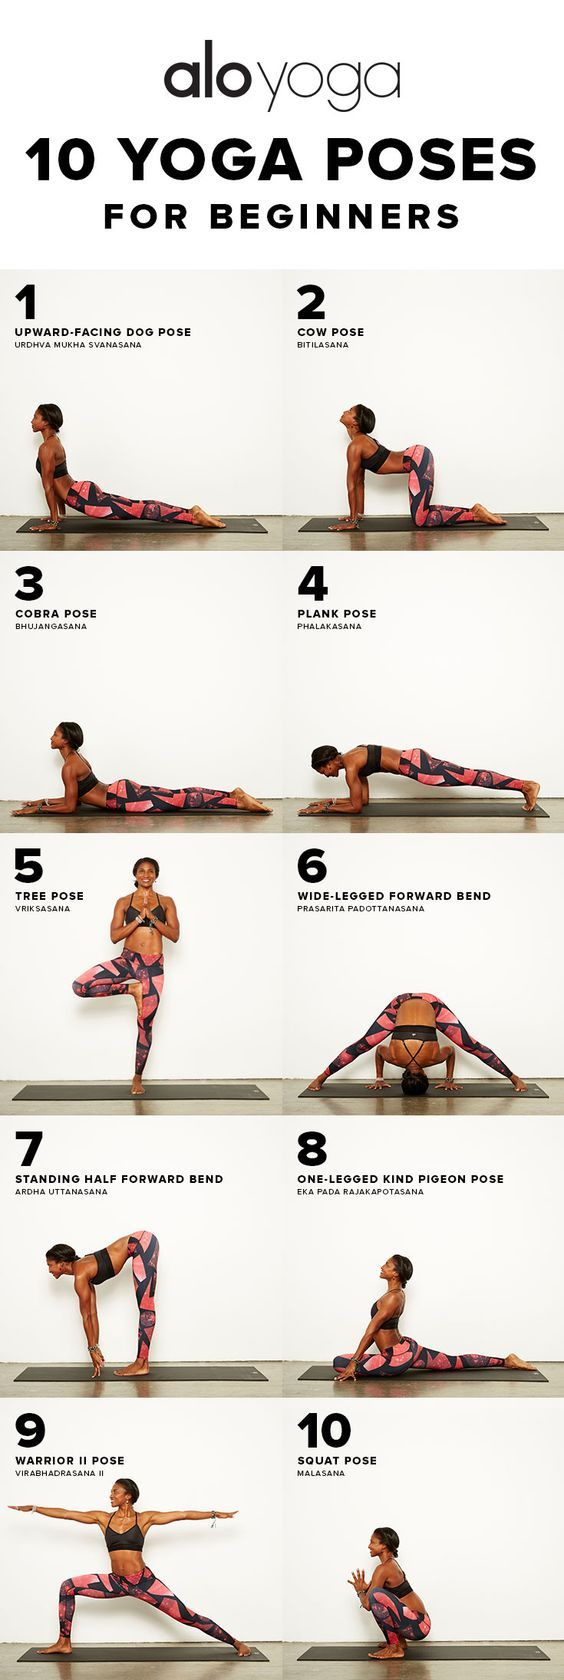 10 Yoga Poses For Beginners #yoga #yogasequence #sequence #inspiration http://www.aloyoga.com: